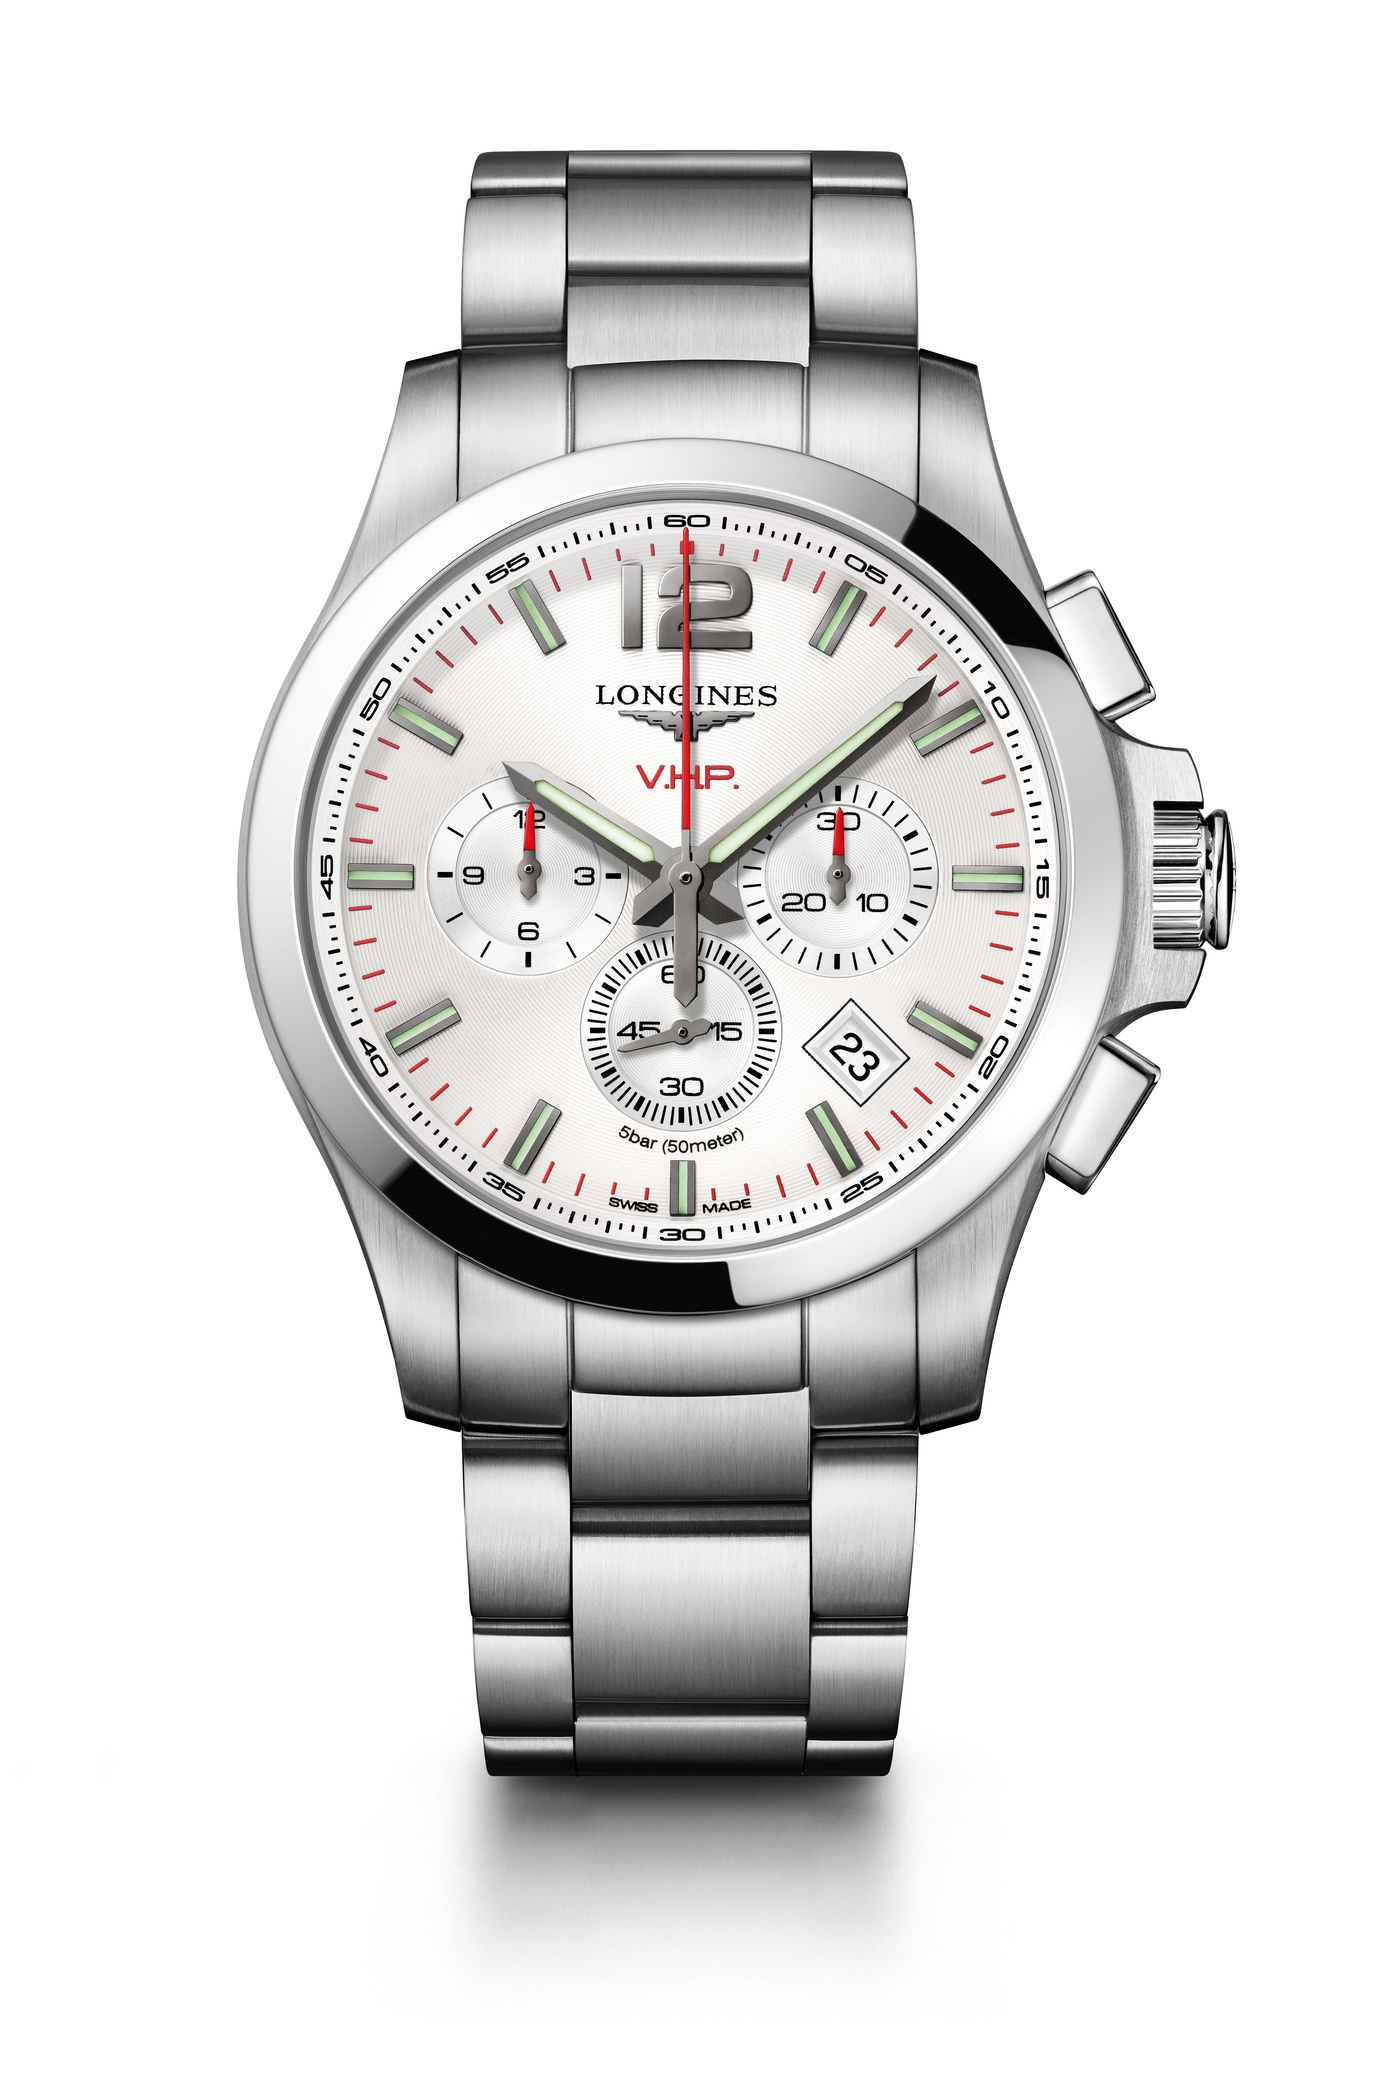 Very Nueva Era Conquest CuarzoLoff Del it Relojes De Longines La wNy8nOvm0